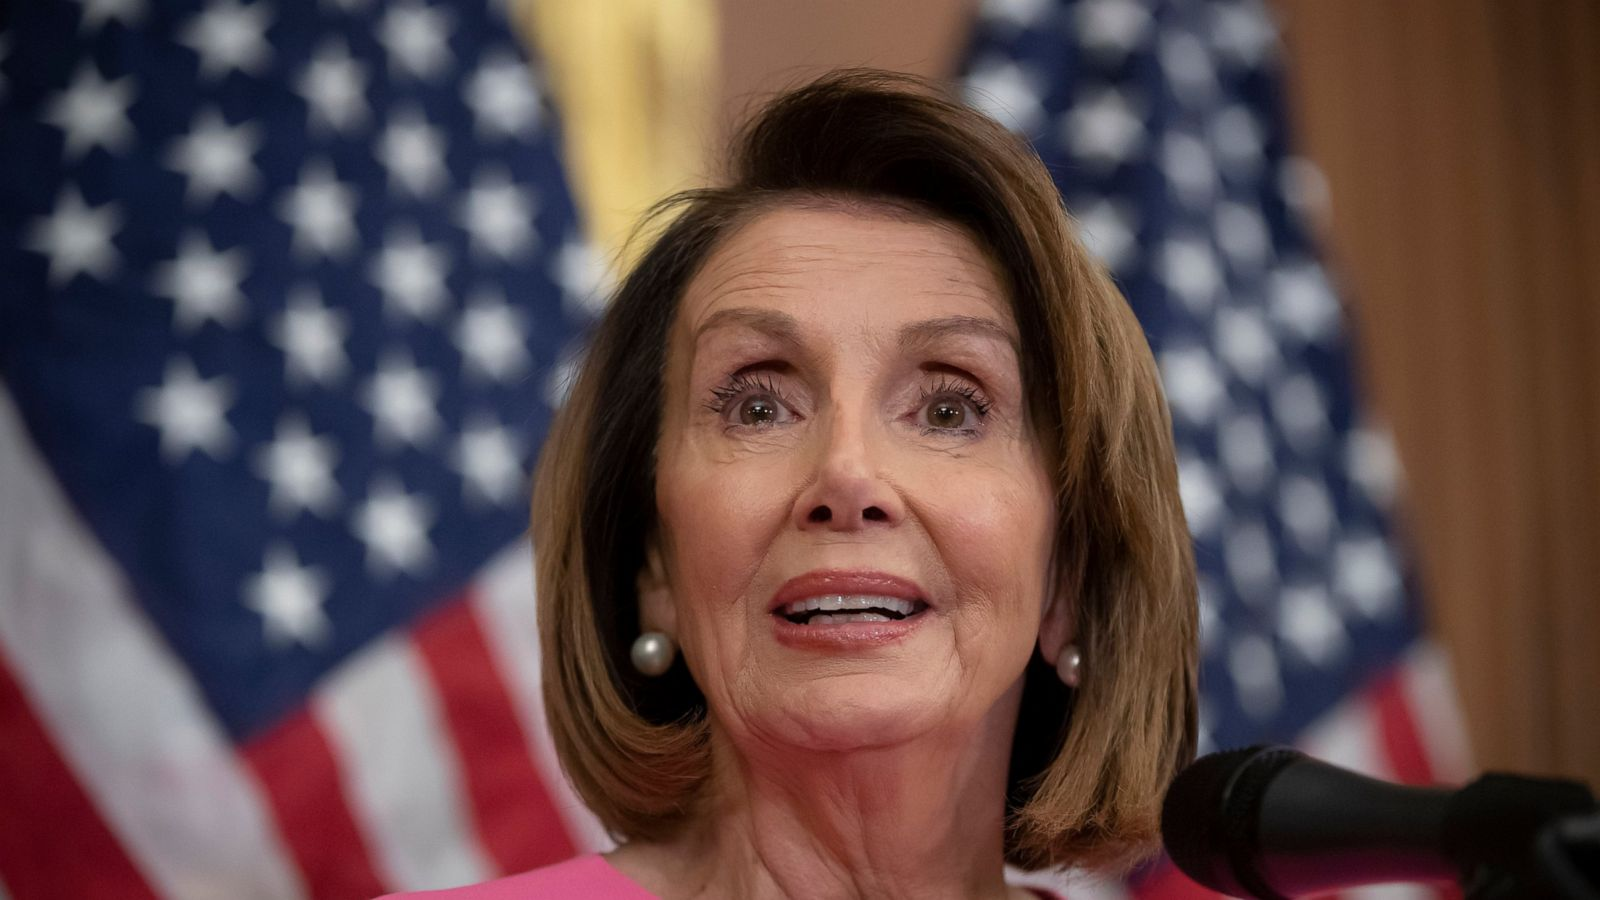 abcnews.go.com - The Associated Press - Pelosi being honored with JFK Profile in Courage Award